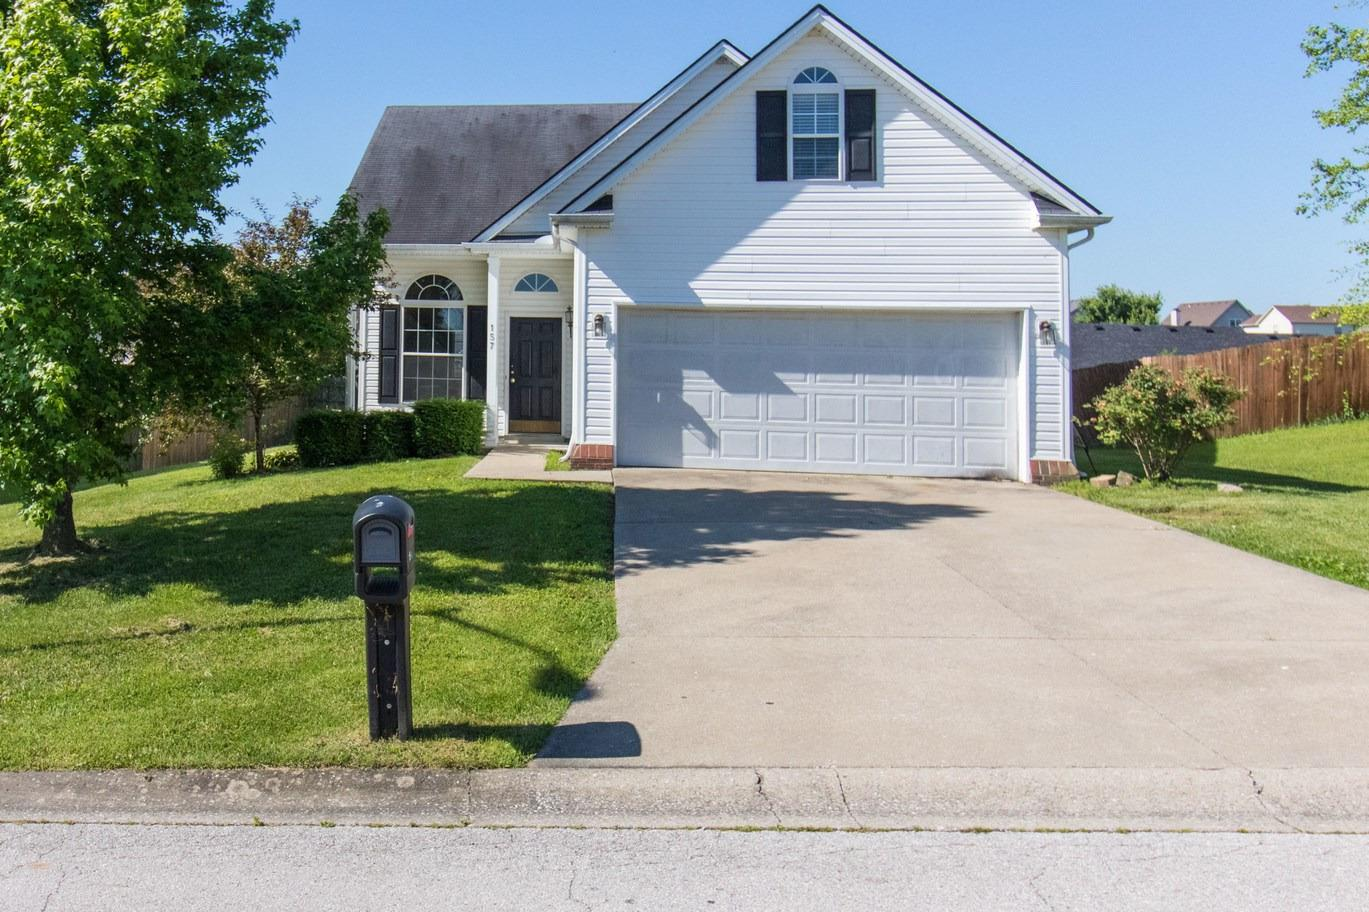 Home For Sale at 3113 Colby Rd, Winchester, KY 40391